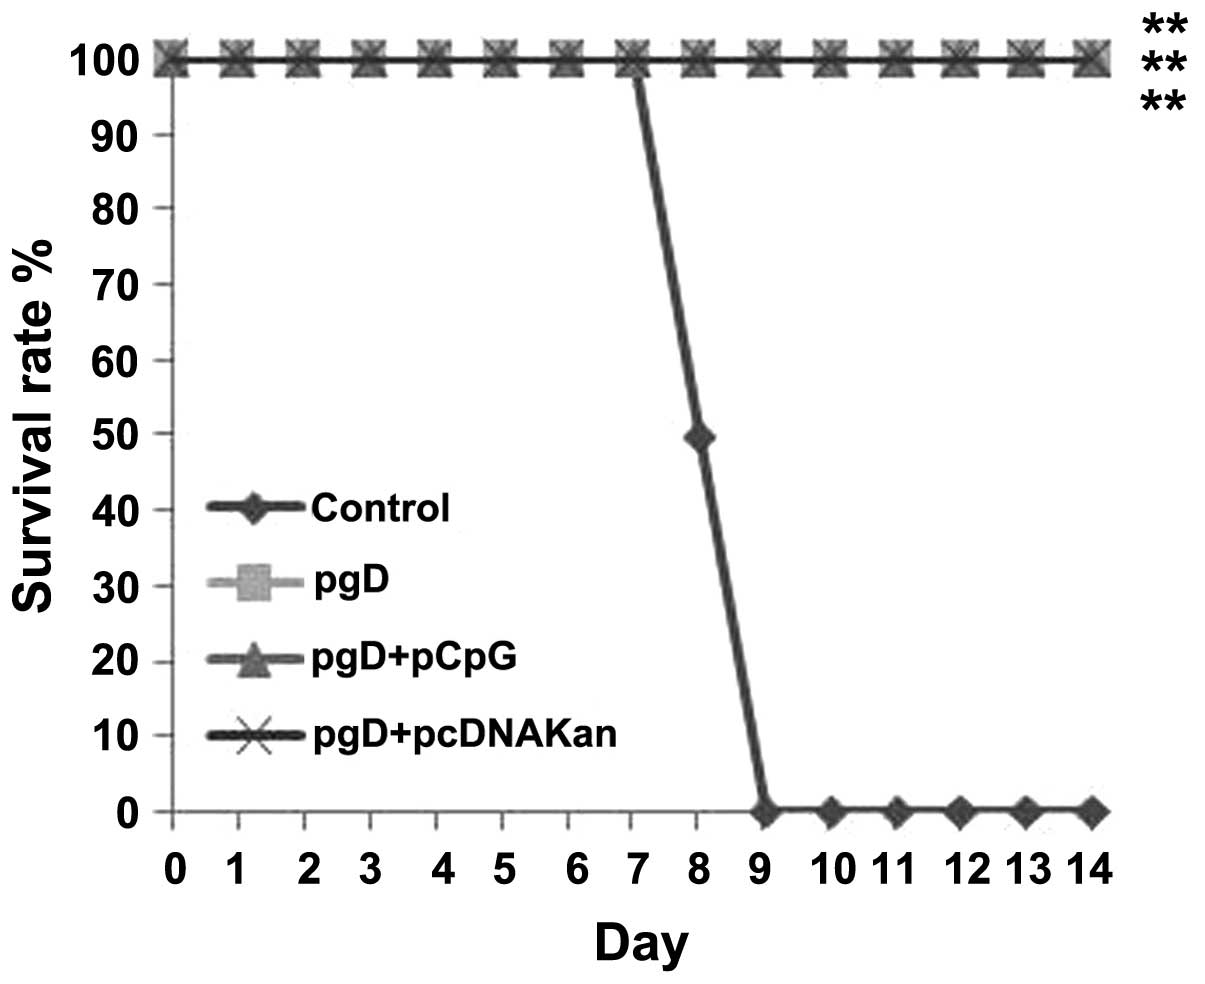 A recombinant plasmid containing CpG motifs as a novel vaccine